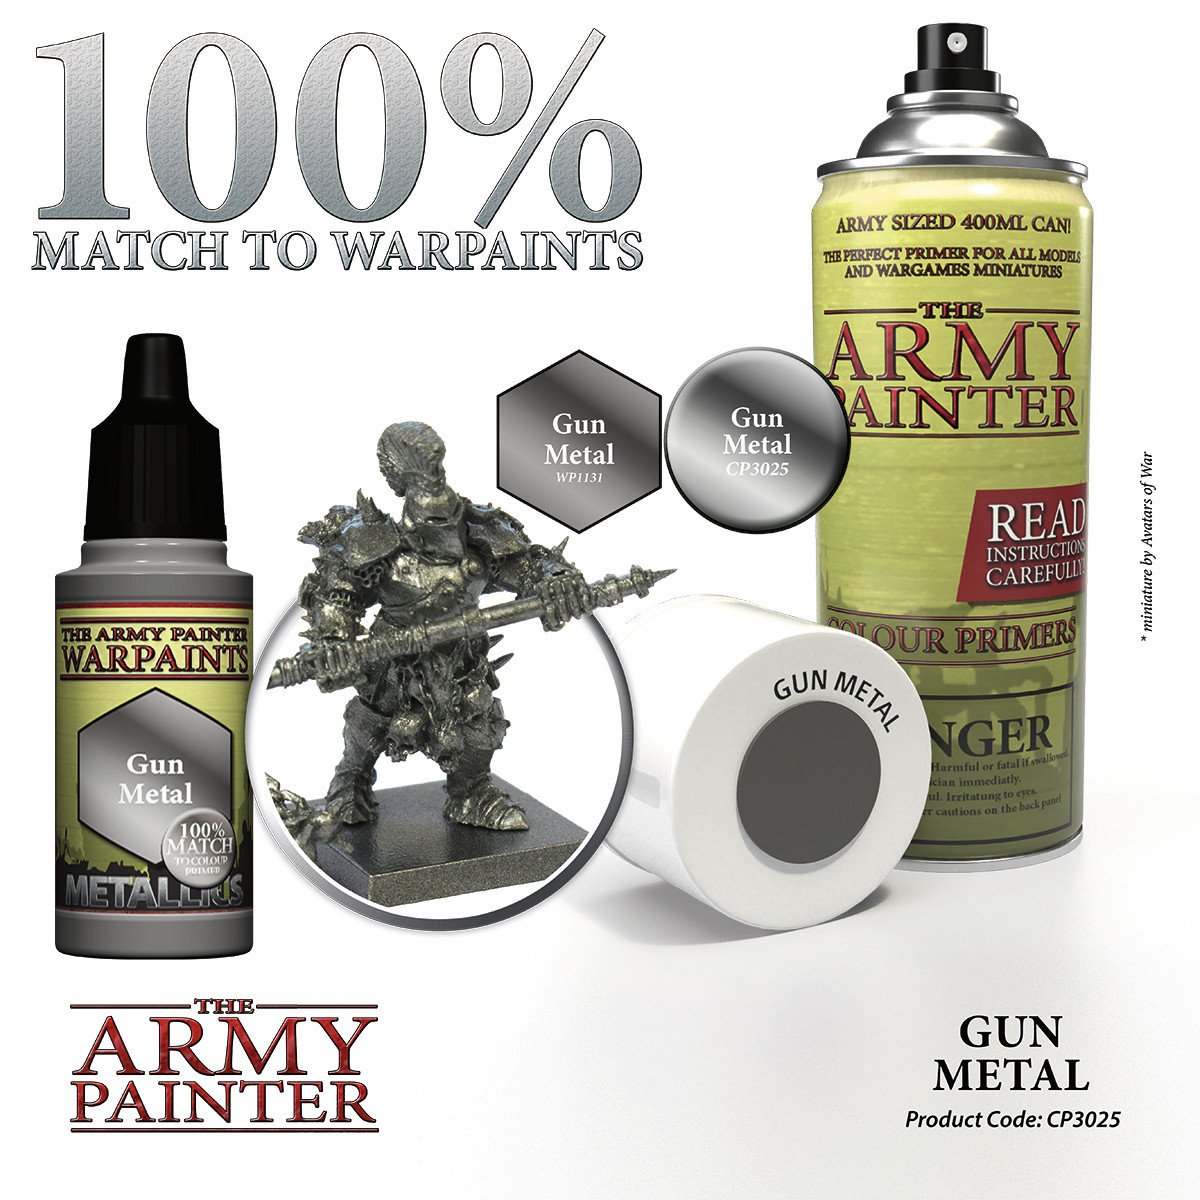 The Army Painter Primer: Colour Gun Metal